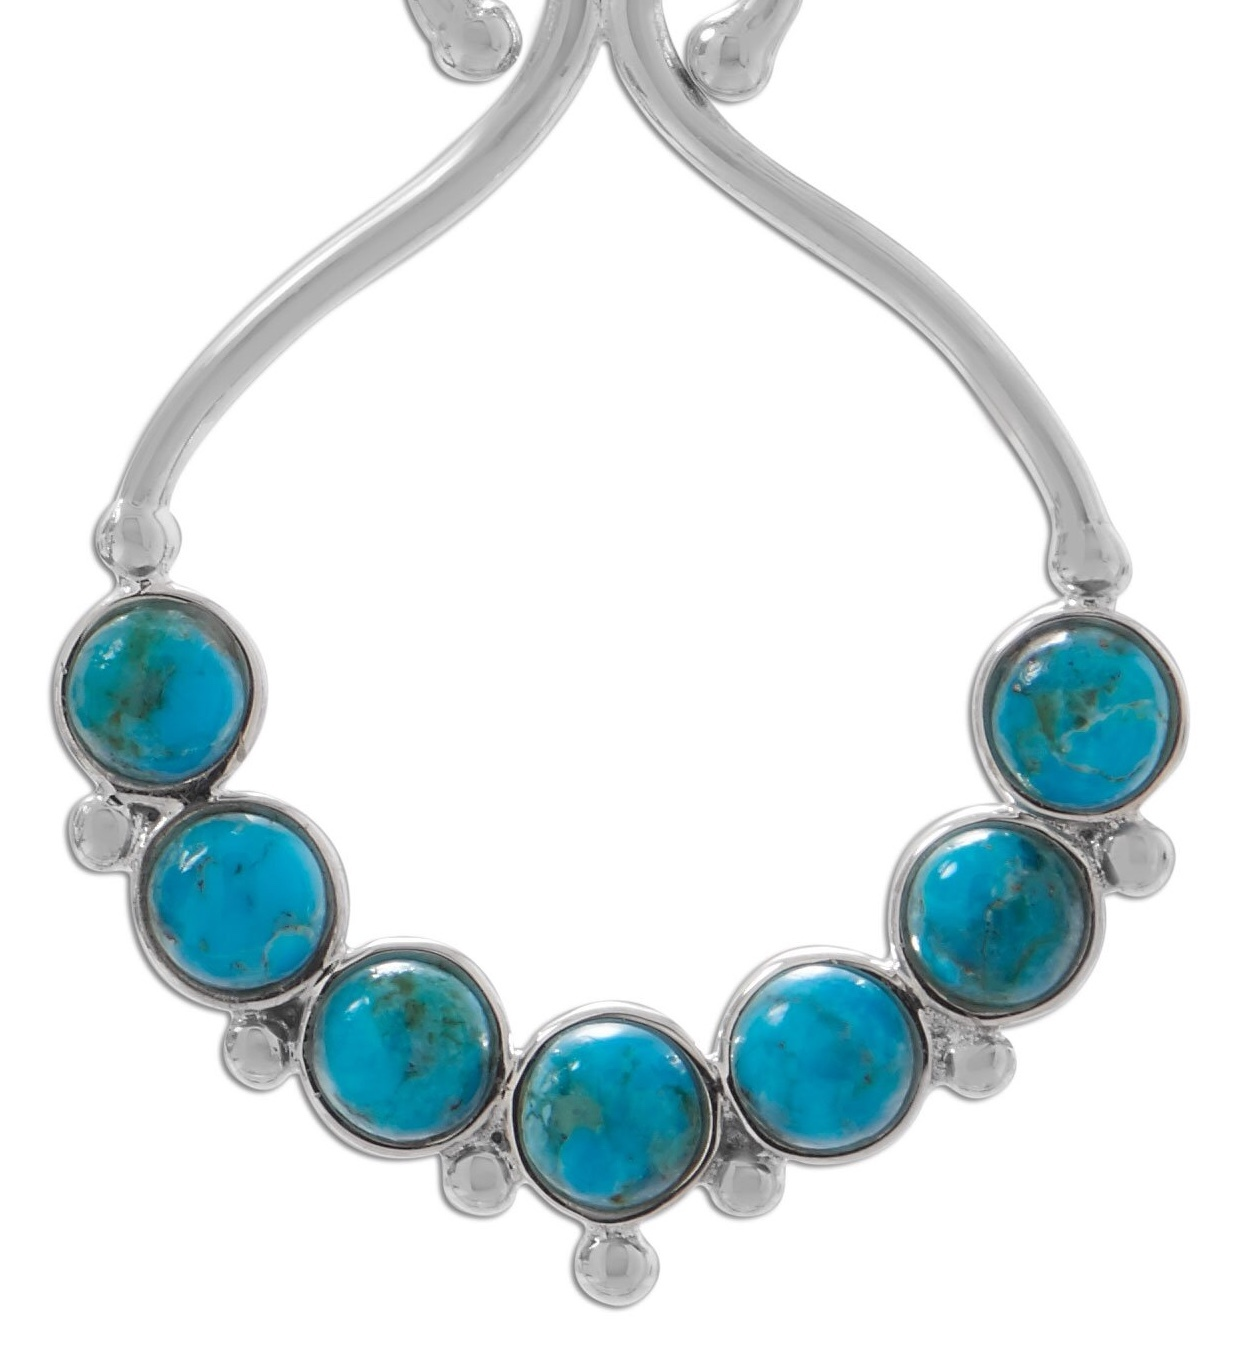 Polished Reconstituted Turquoise Outline and Bead Design French Wire Earri